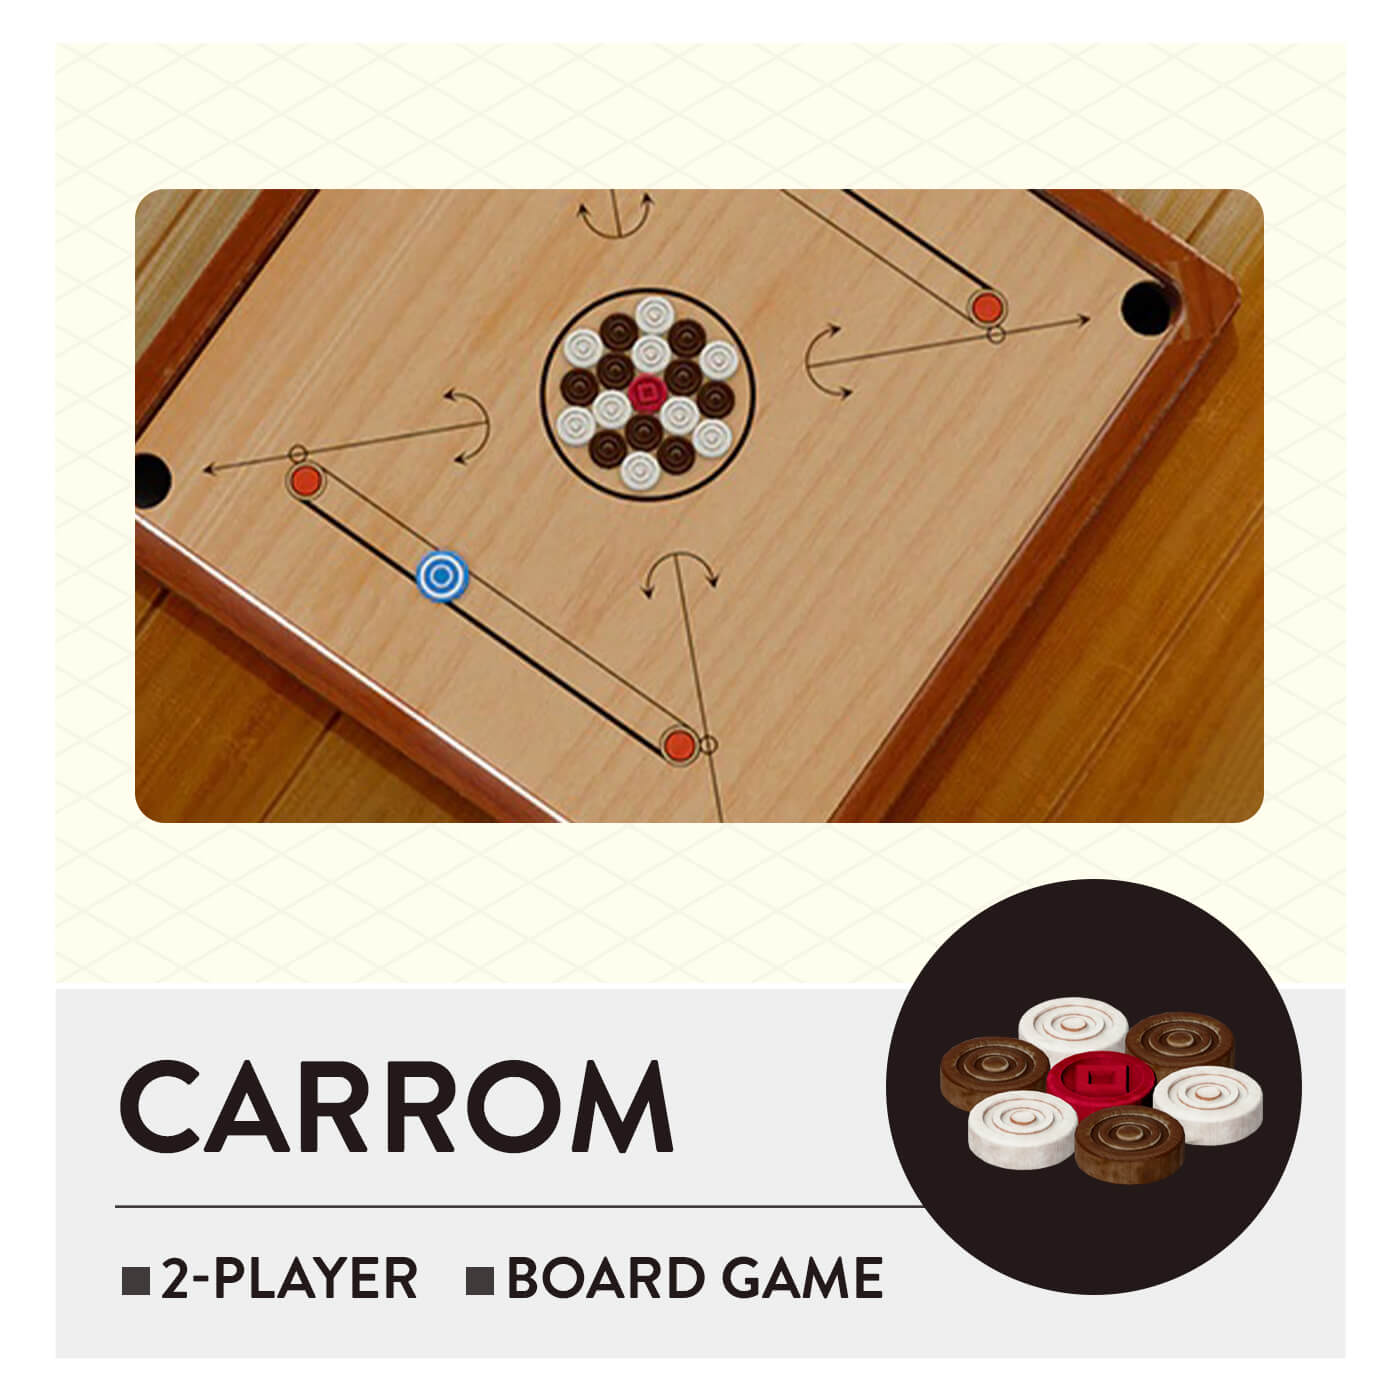 51 Worldwide Games - Carrom